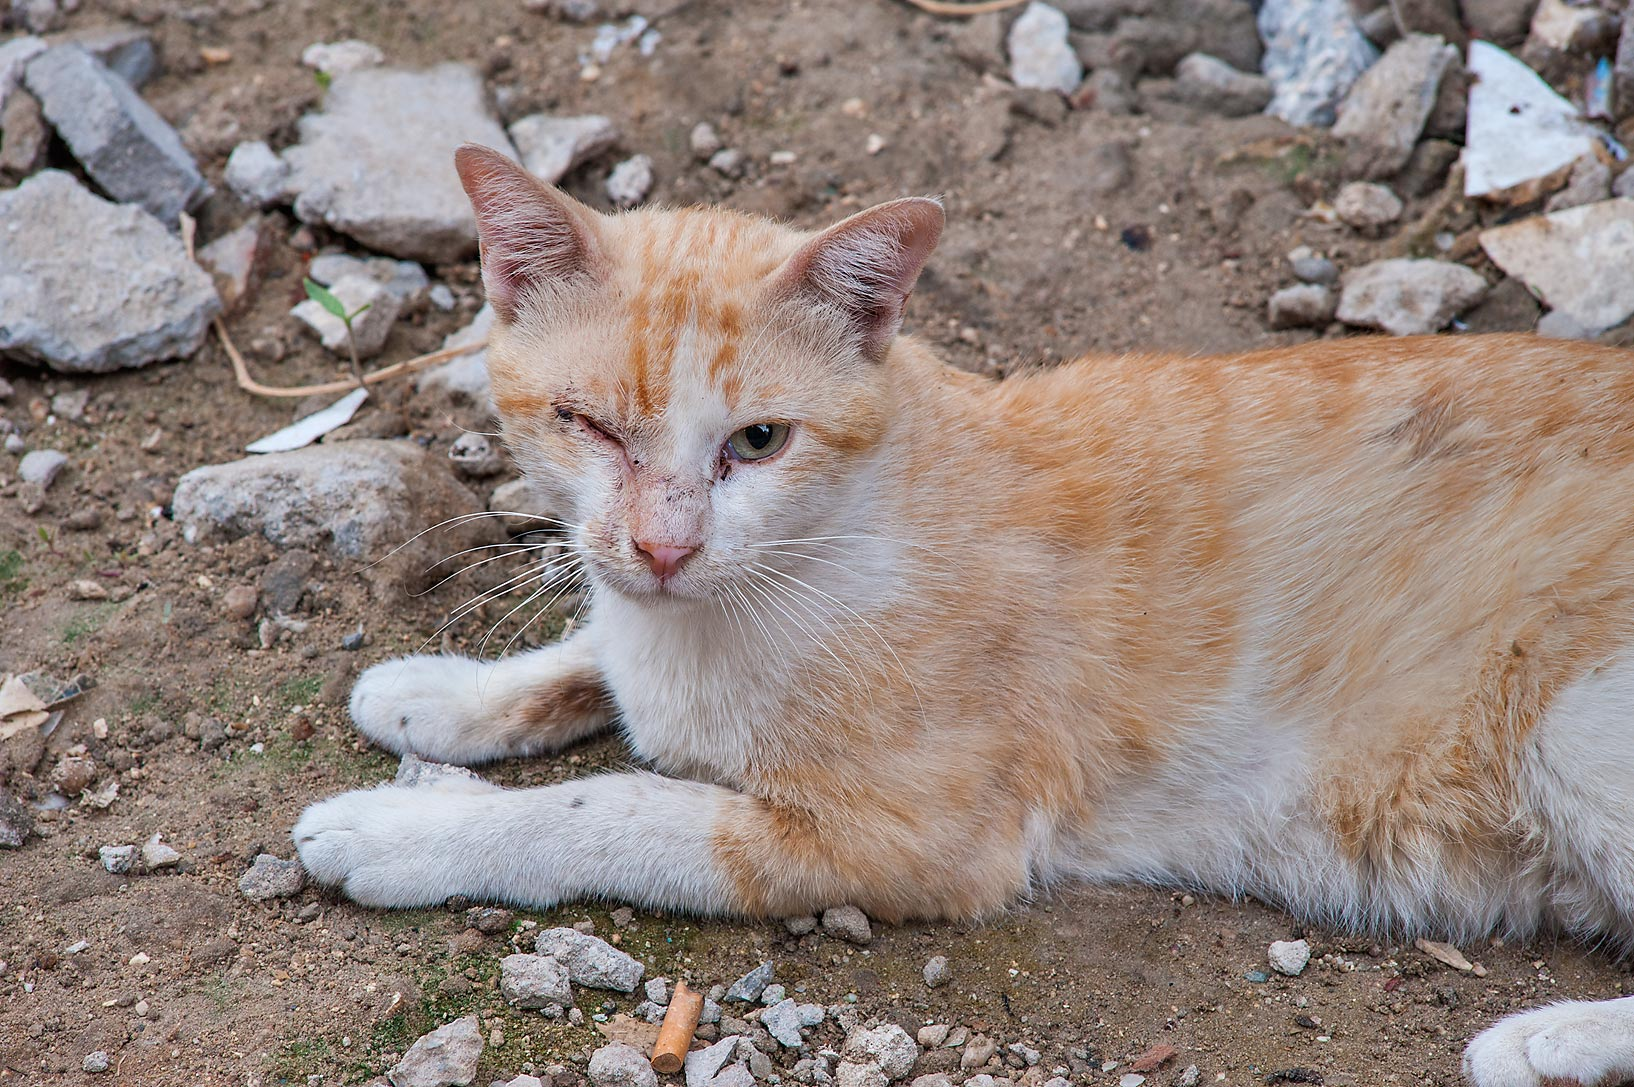 One eyed cat resting near Abdullah Bin Thani St. in Musheirib area. Doha, Qatar